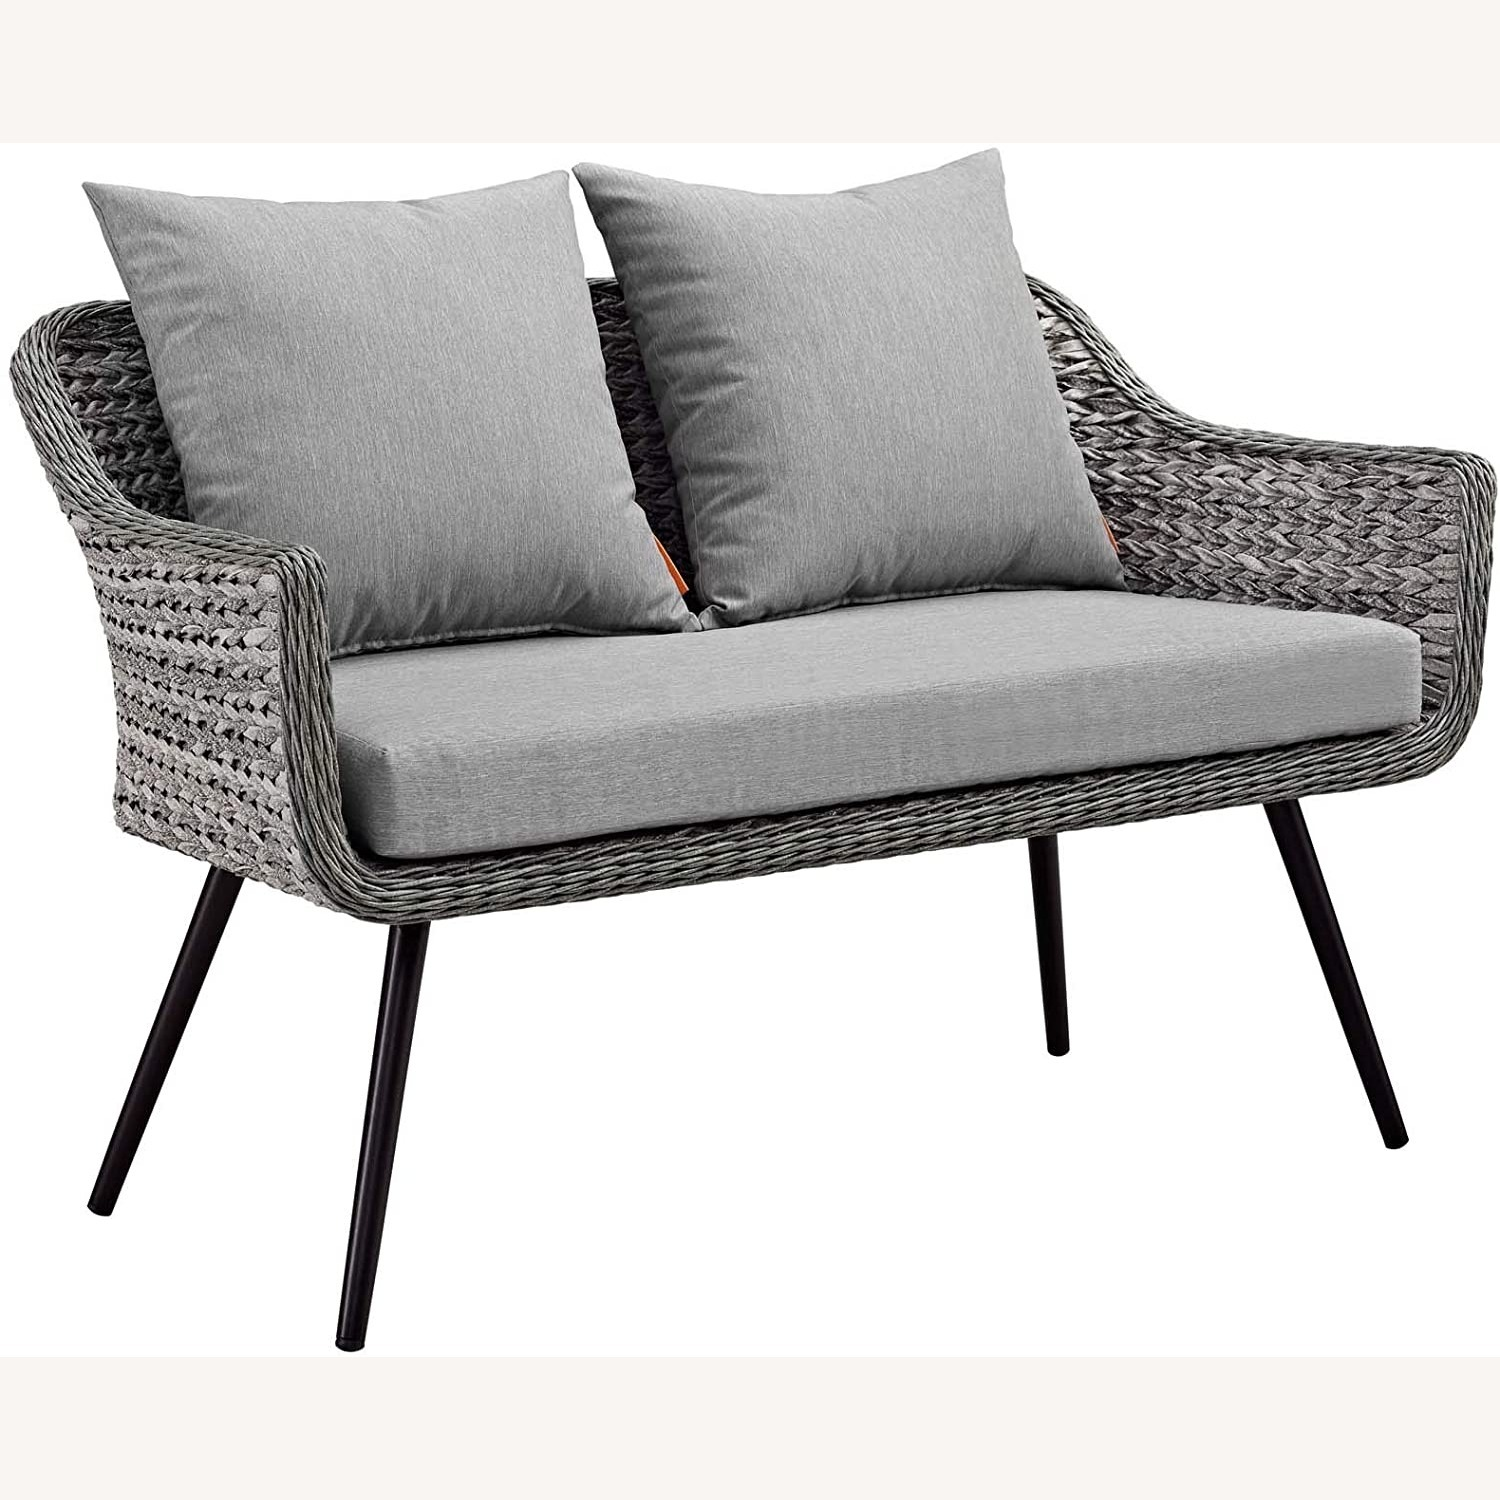 Outdoor Loveseat In Gray-On-Gray Tone Finish - image-0